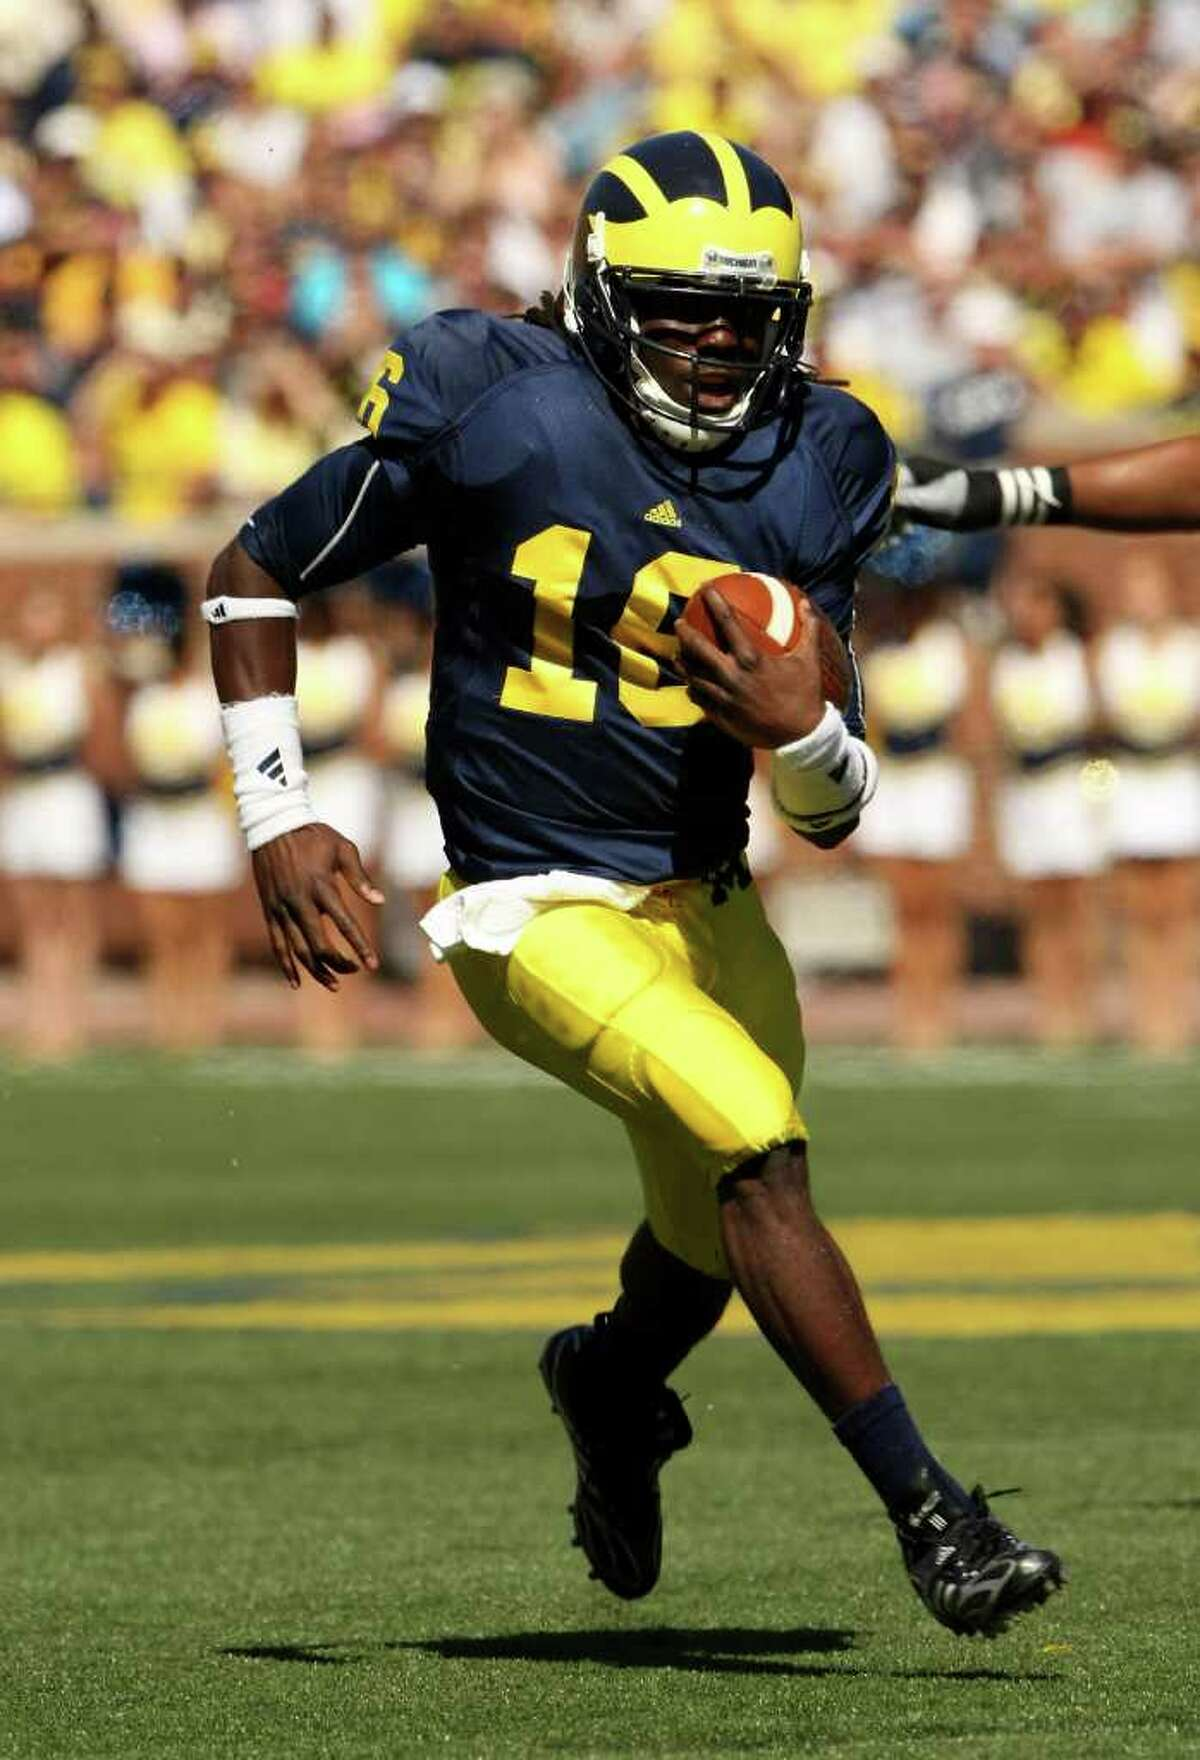 ANN ARBOR, MI - SEPTEMBER 19: Quarterback Denard Robinson #16 of the Michigan Wolverines carries the ball on a 36 yard touchdown run in the fourth quarter against the Eastern Michigan Eagles at Michigan Stadium on September 19, 2009 in Ann Arbor, Michigan. (Photo by Stephen Dunn/Getty Images) *** Local Caption *** Denard Robinson